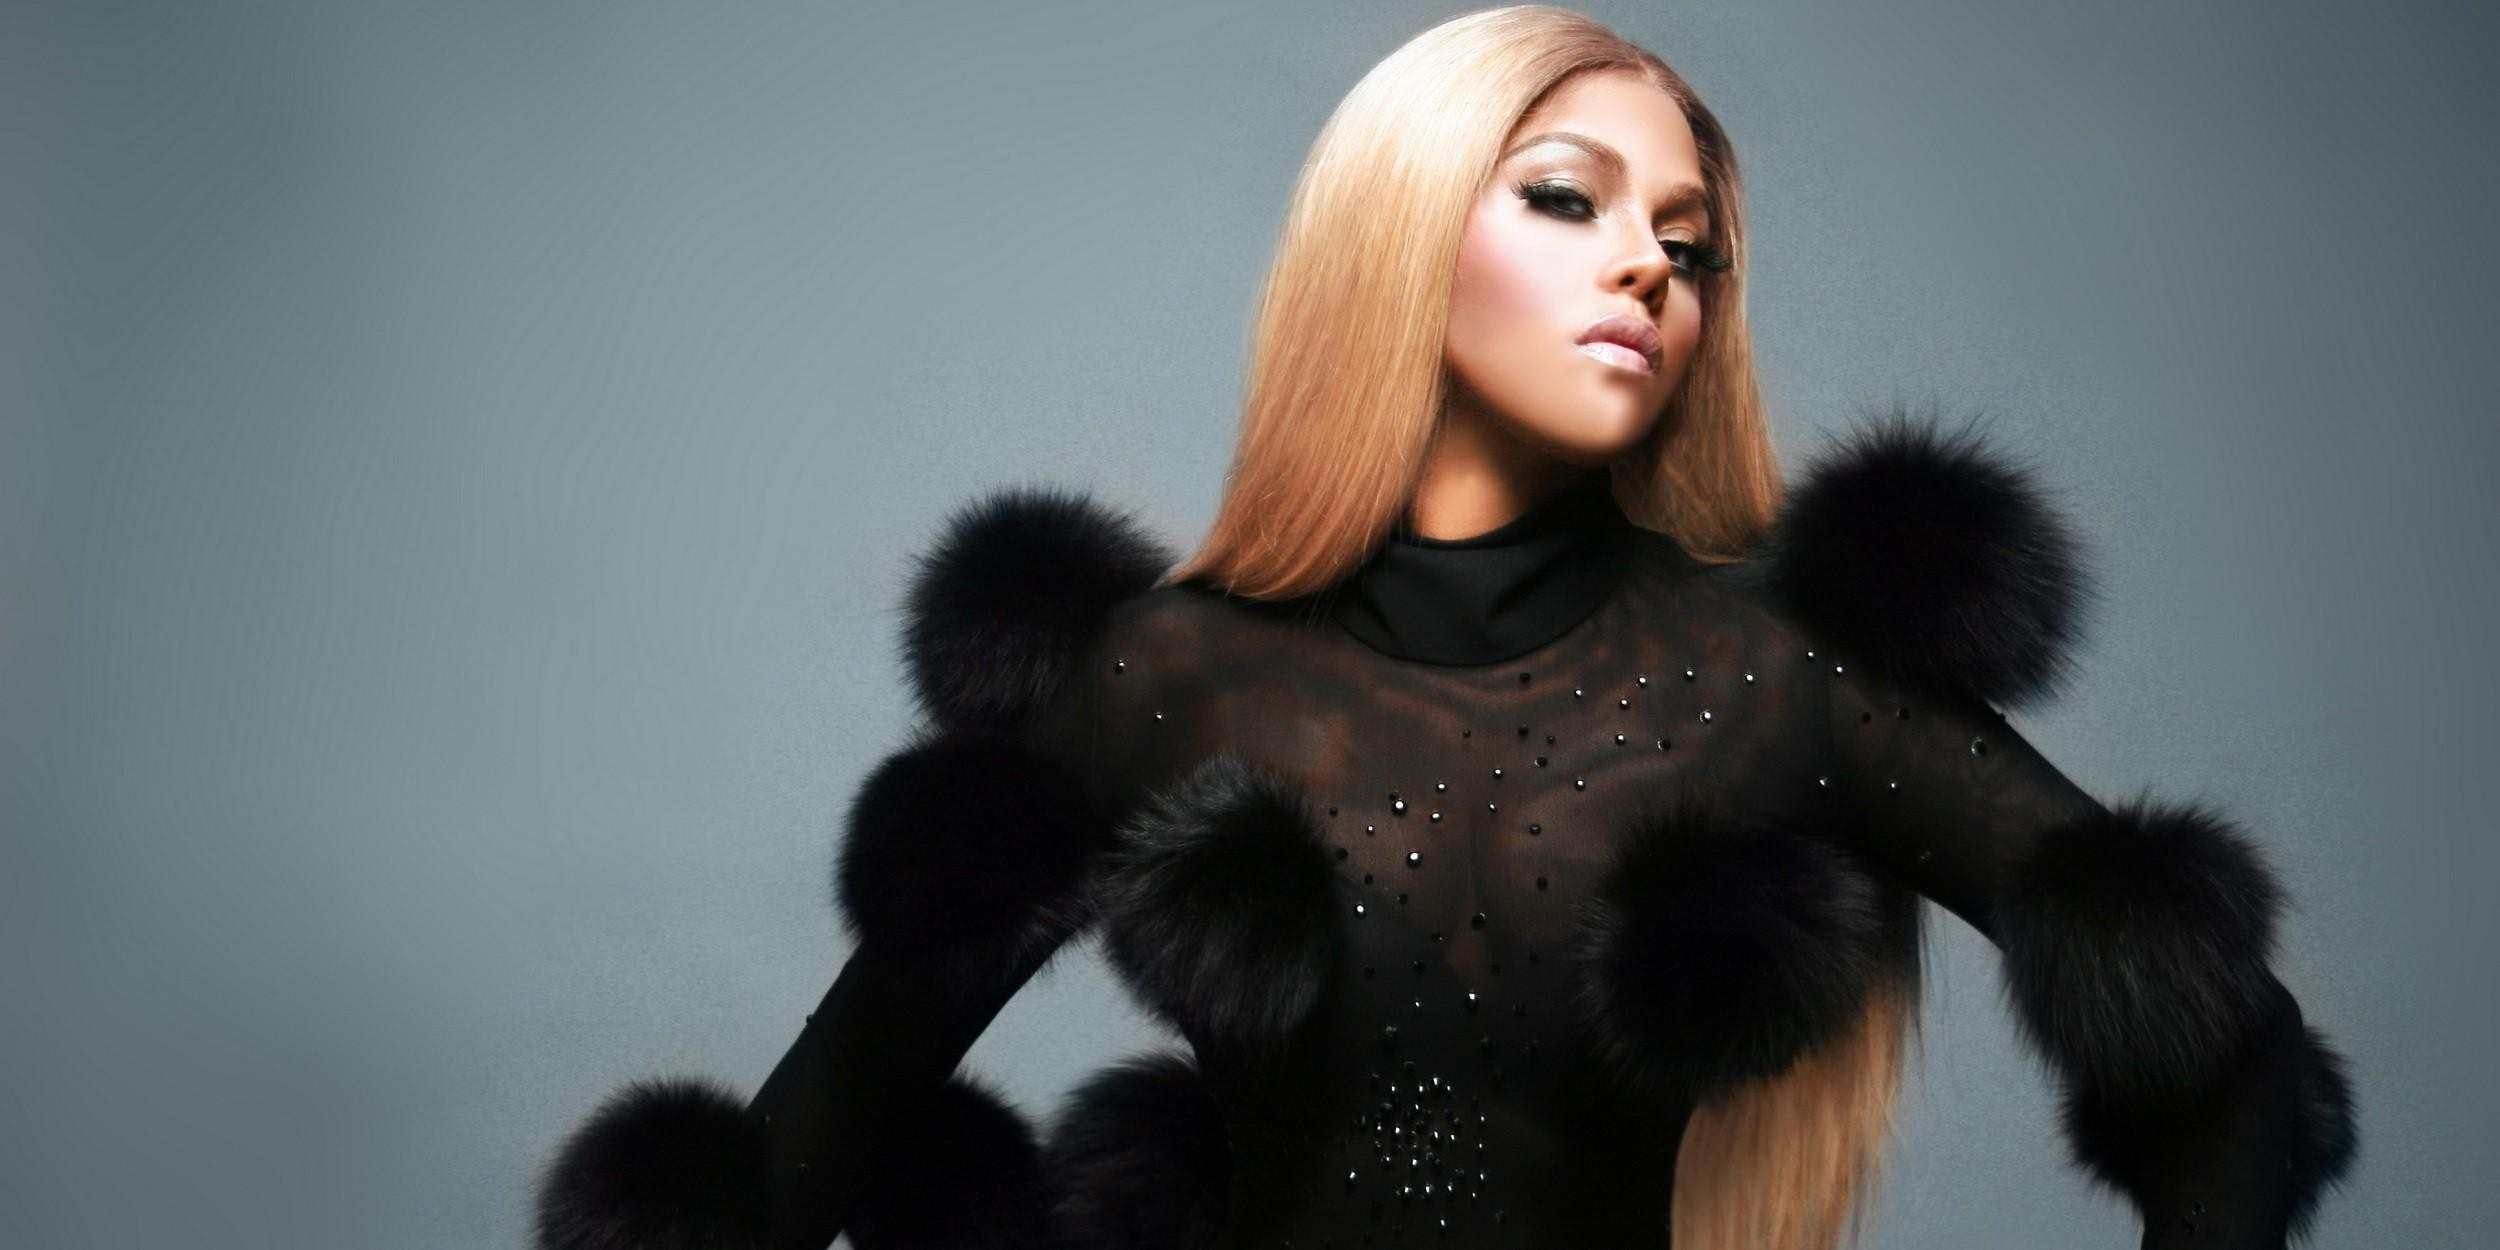 Lil Kim Wallpapers Images Photos Pictures Backgrounds